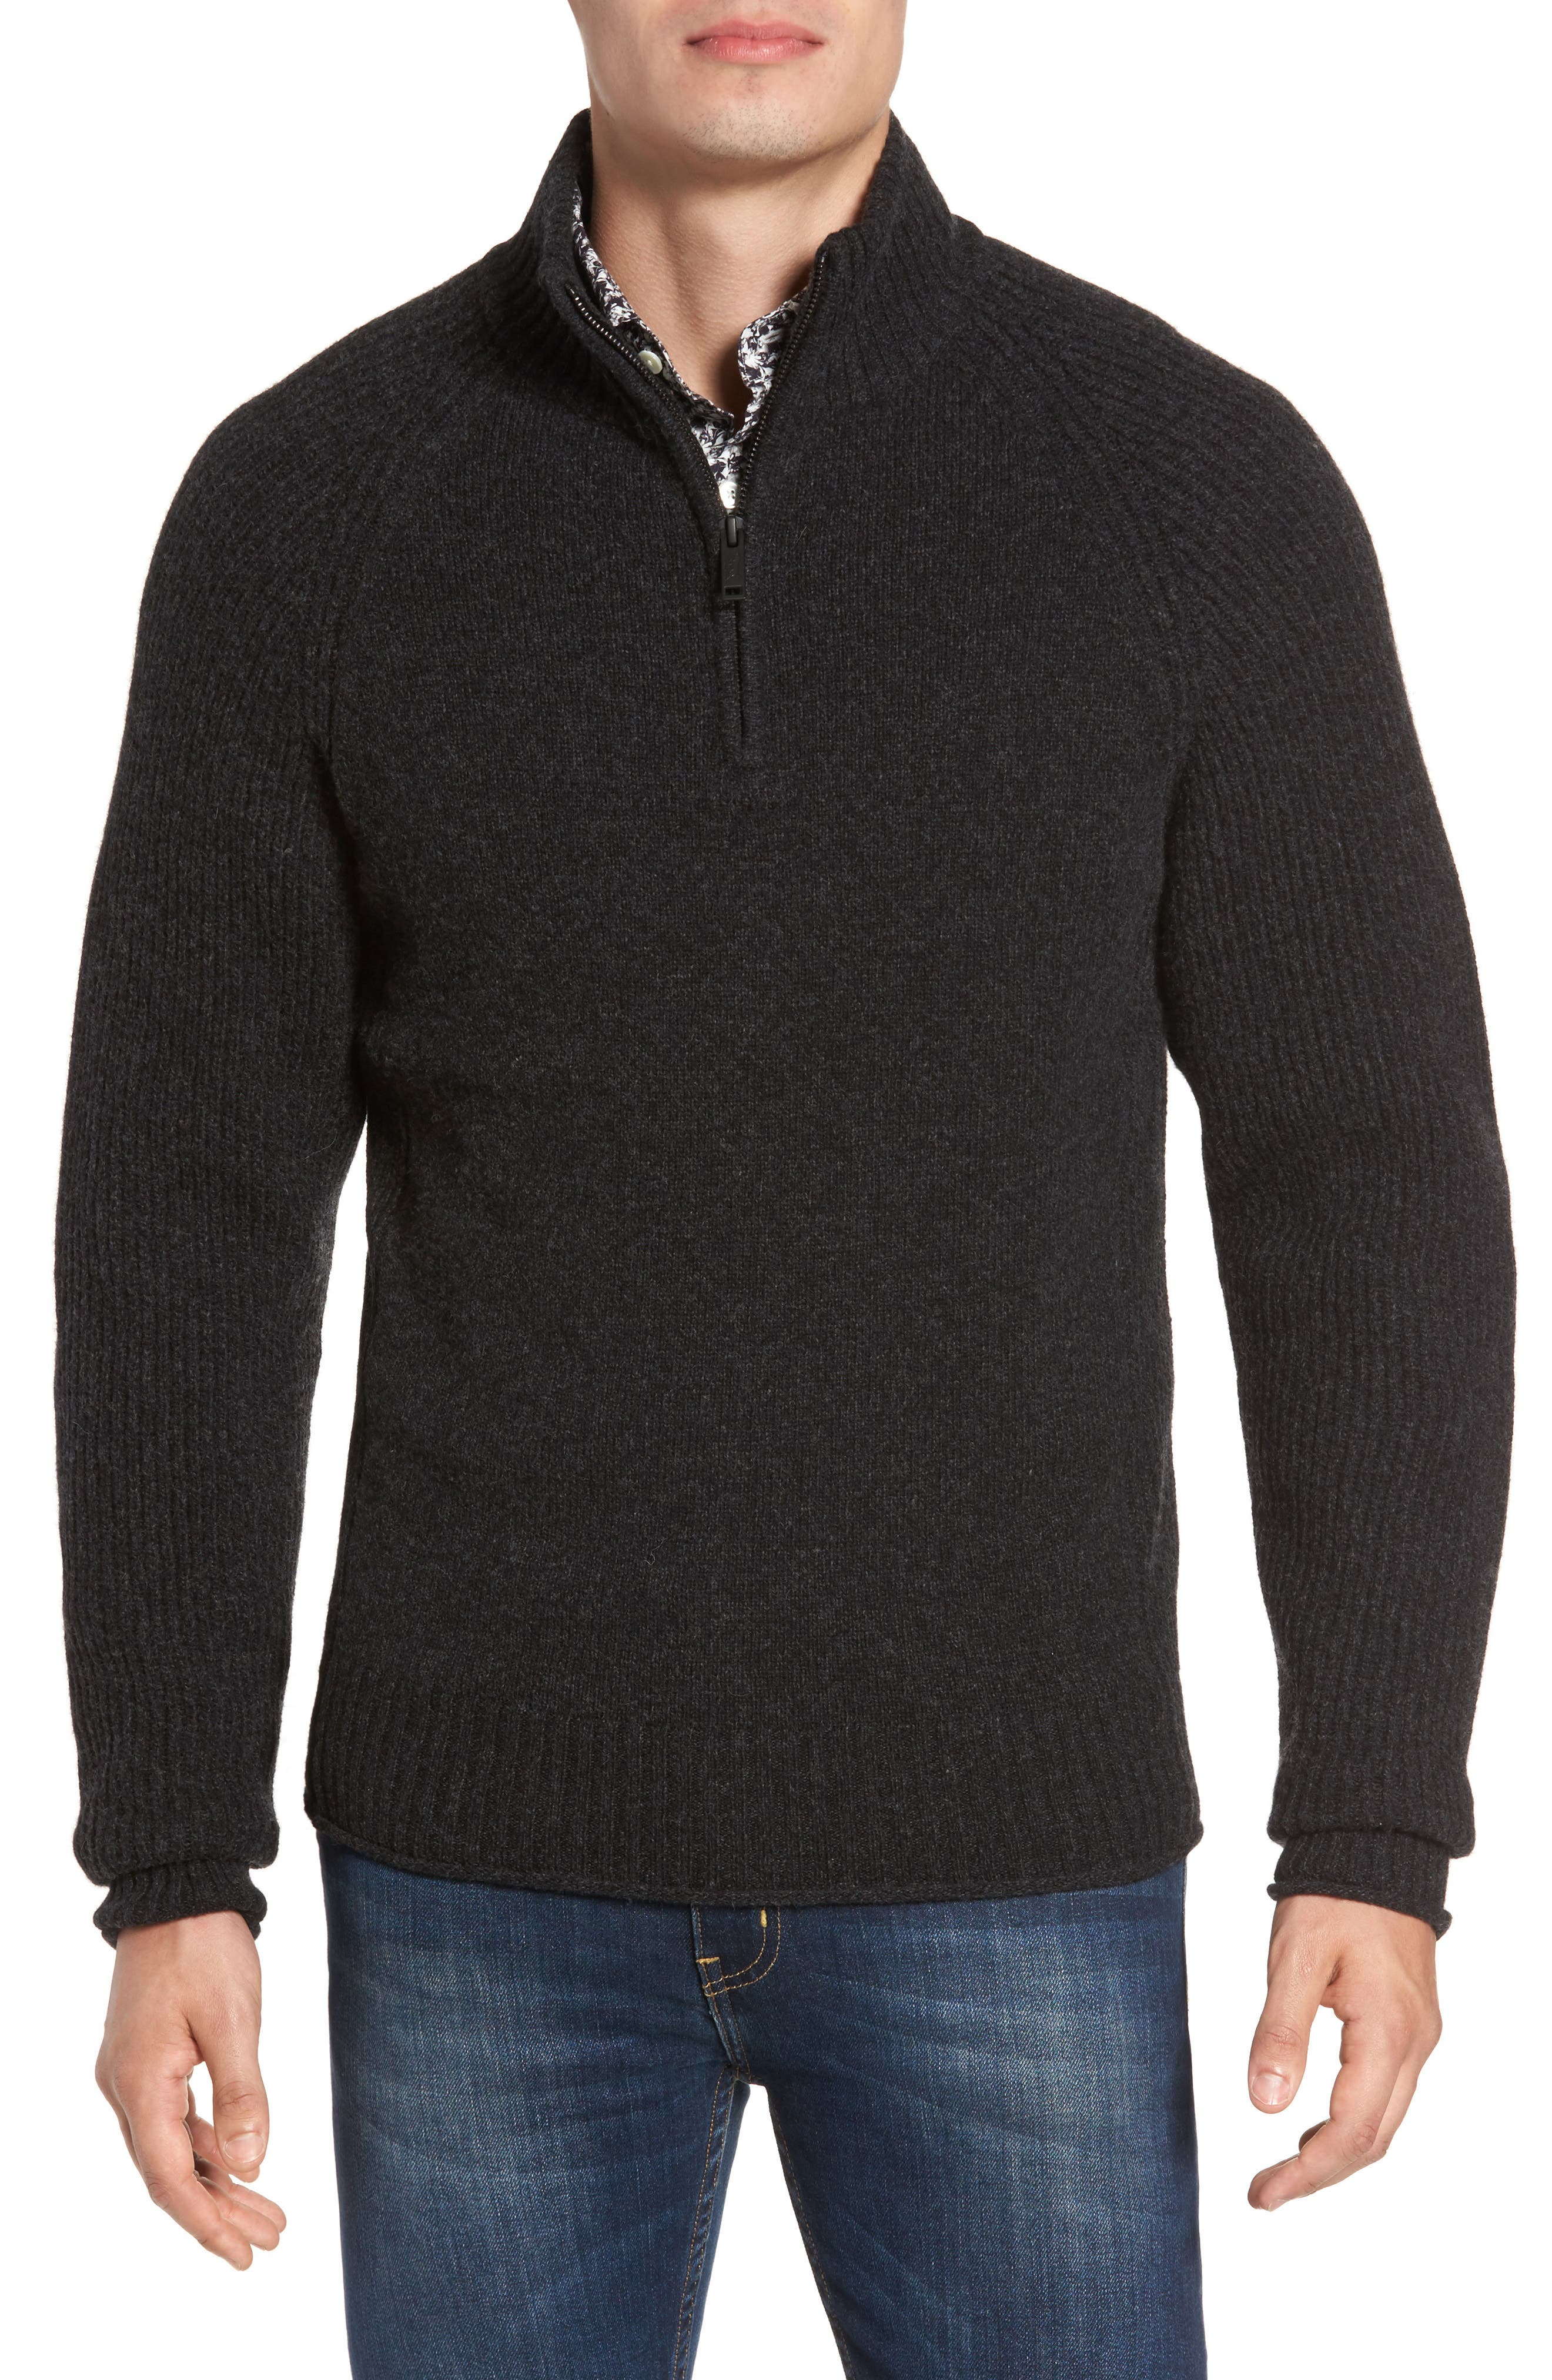 Stredwick Lambswool Sweater,                             Main thumbnail 1, color,                             021